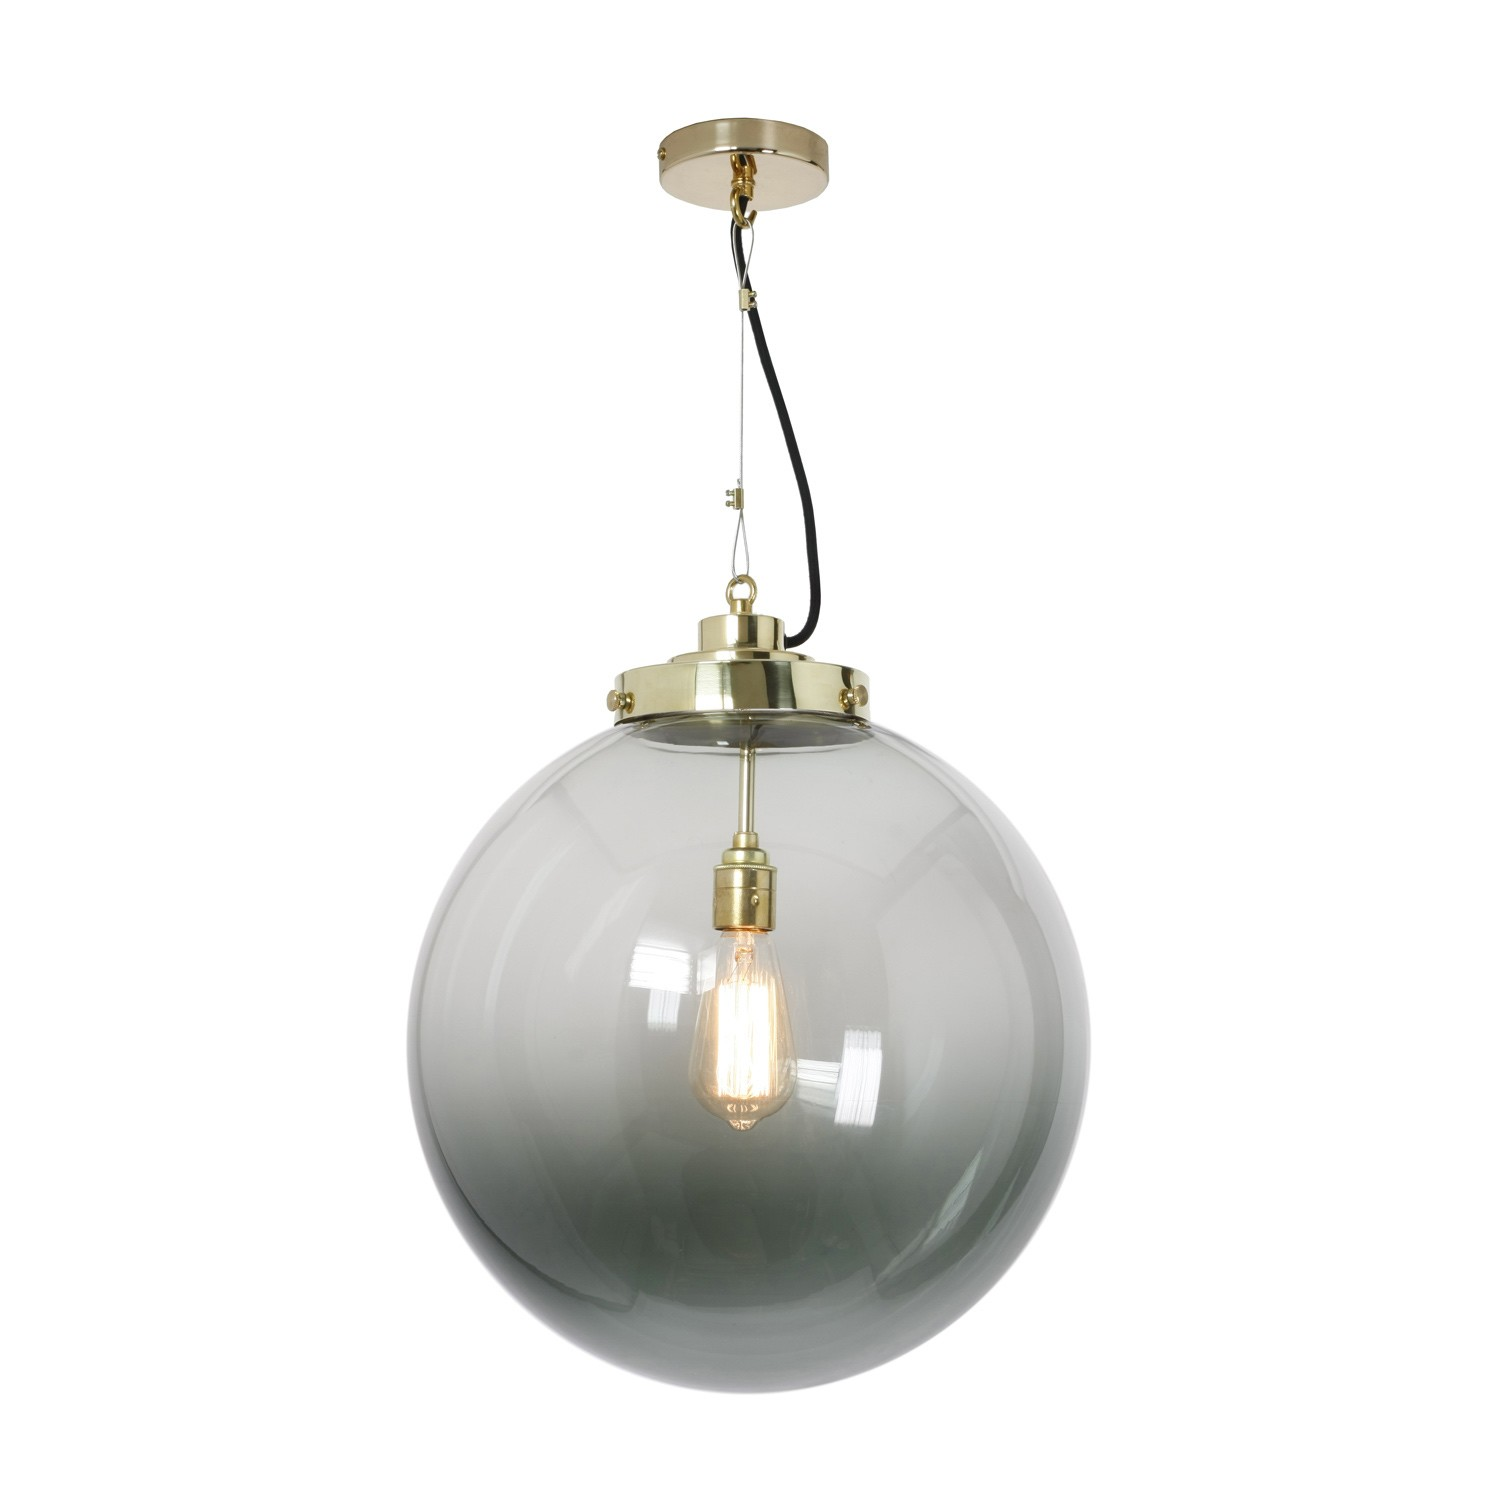 Globe Pendant Light Anthracite and Brass, Large